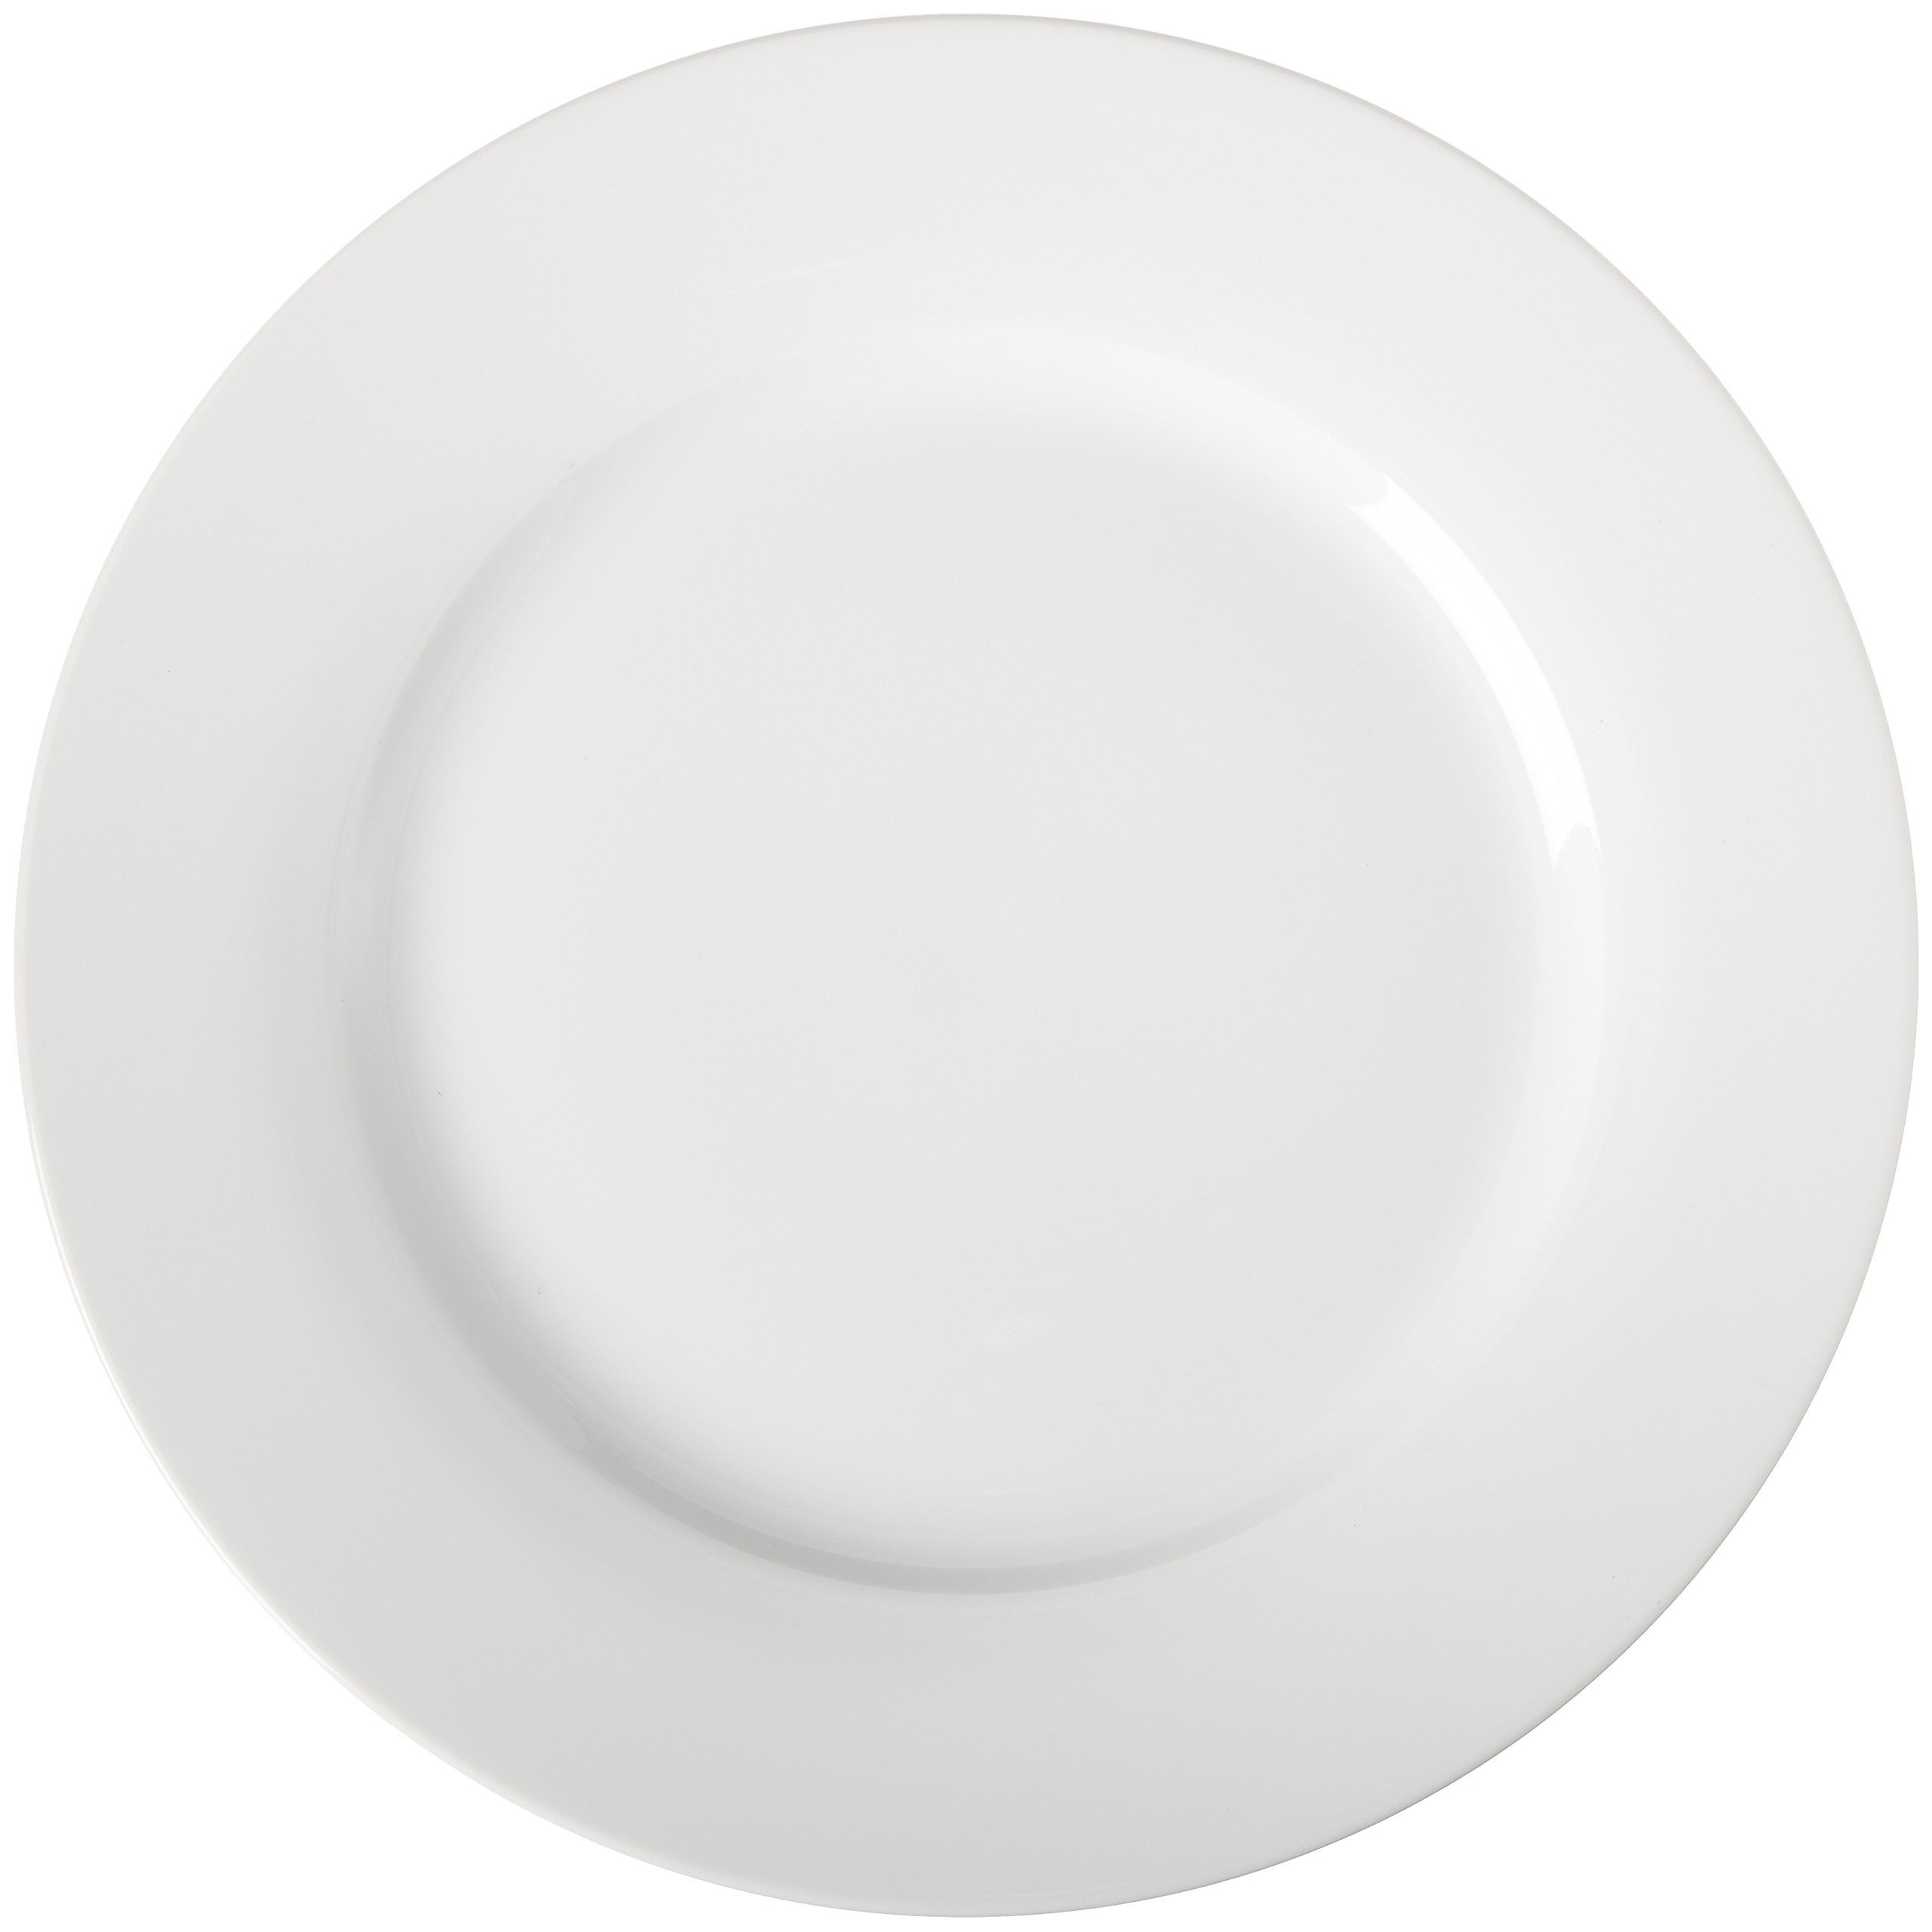 AmazonBasics 6-Piece White Dinner Plate Set by AmazonBasics